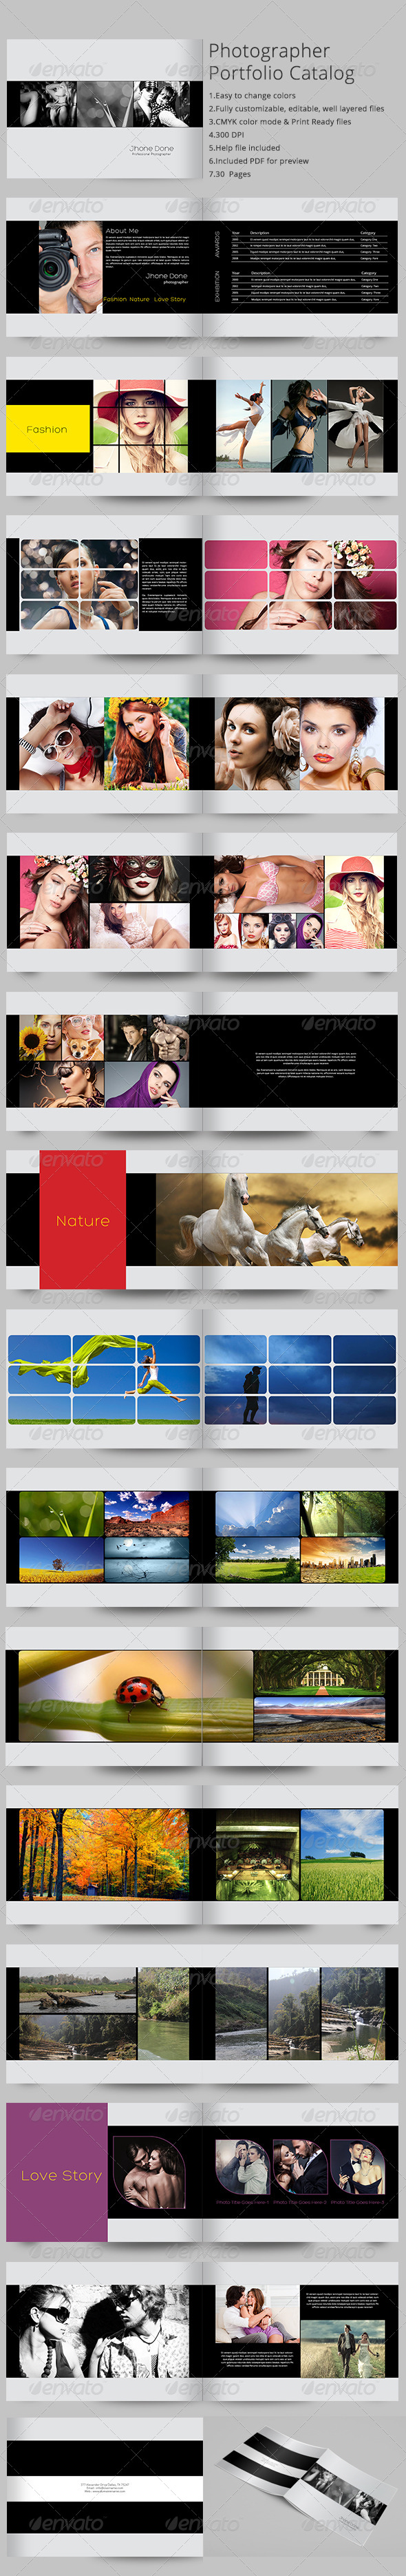 GraphicRiver Photographer Portfolio Catalog 7245077